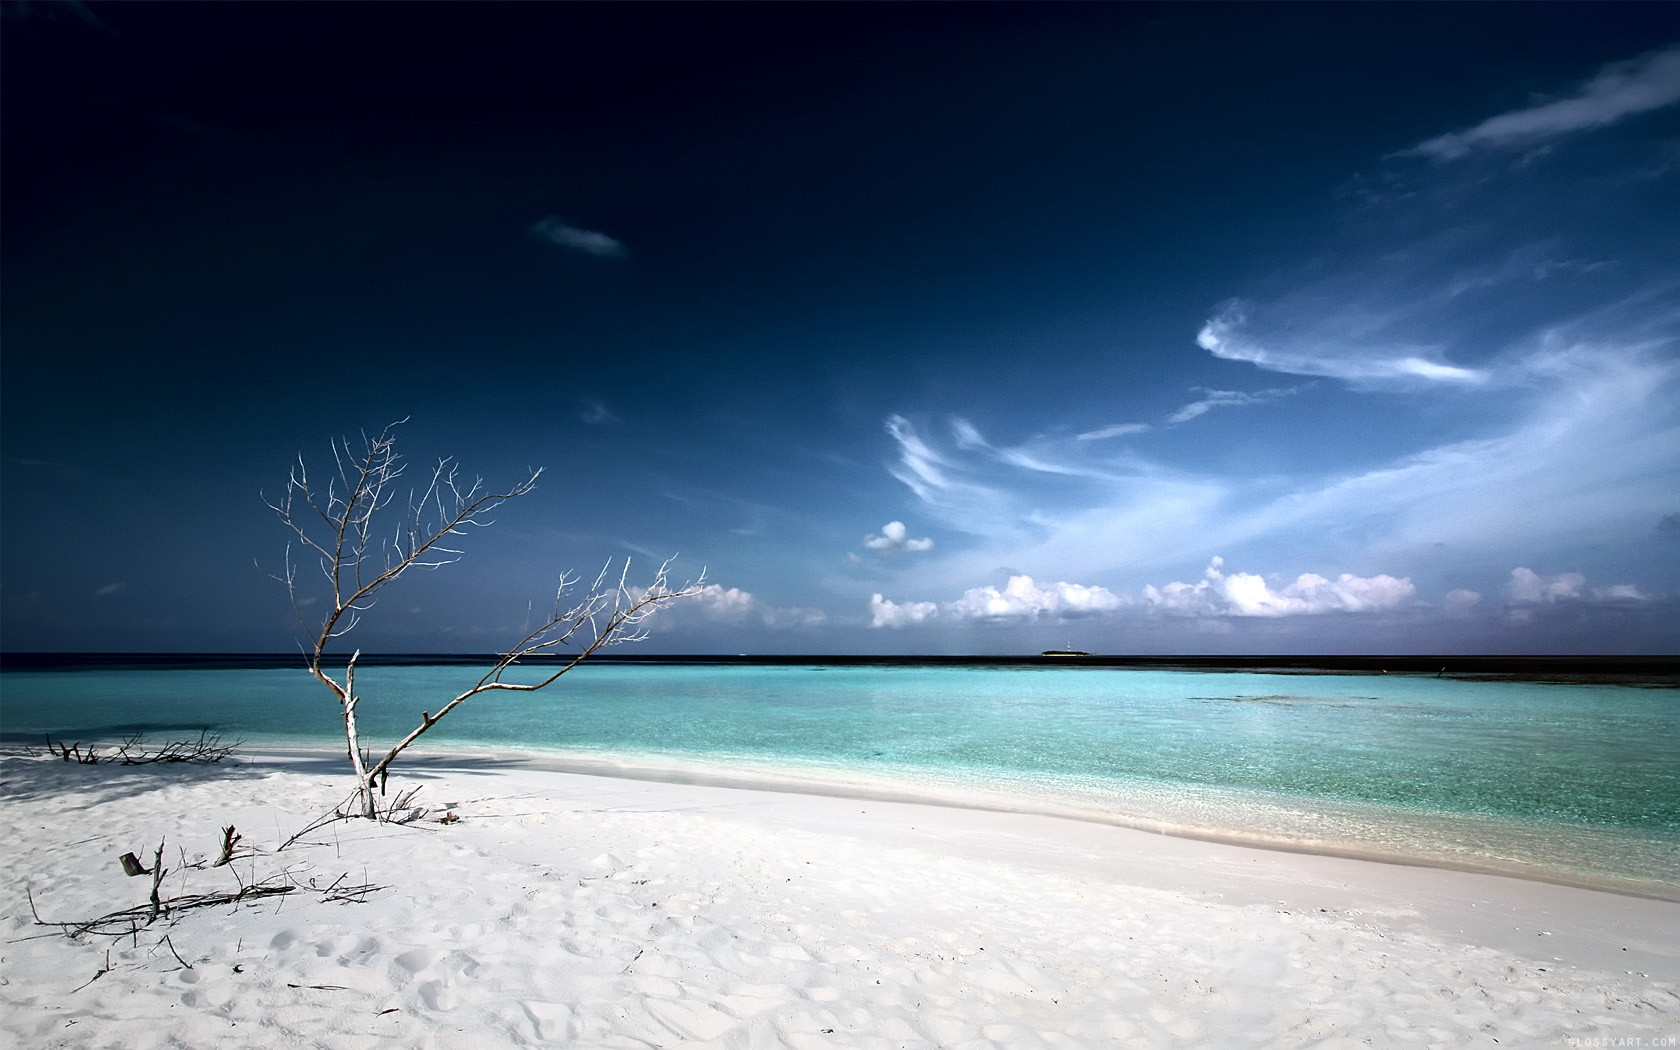 Beach White Sand Wallpaper Fullscreen PC